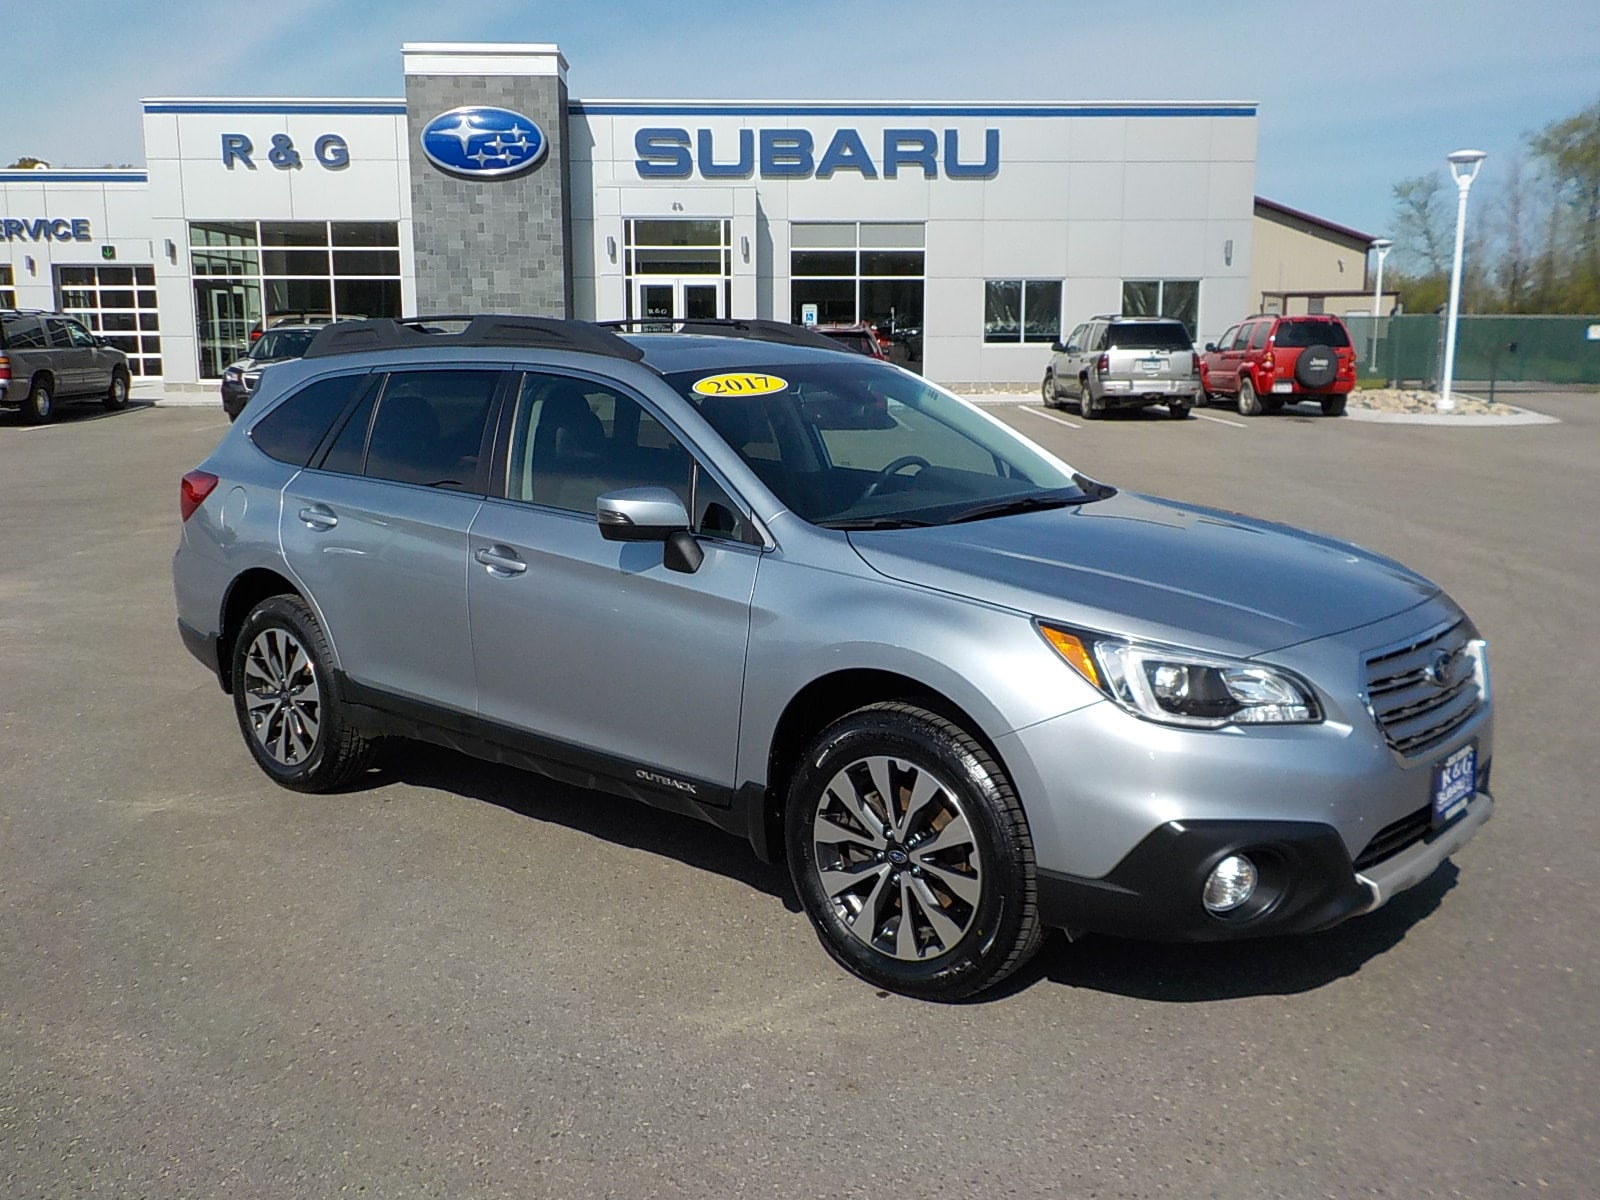 2017 Subaru Outback 2.5 Limited, Eyesight, GPS, New Tires, As Low As .99% APR SUV